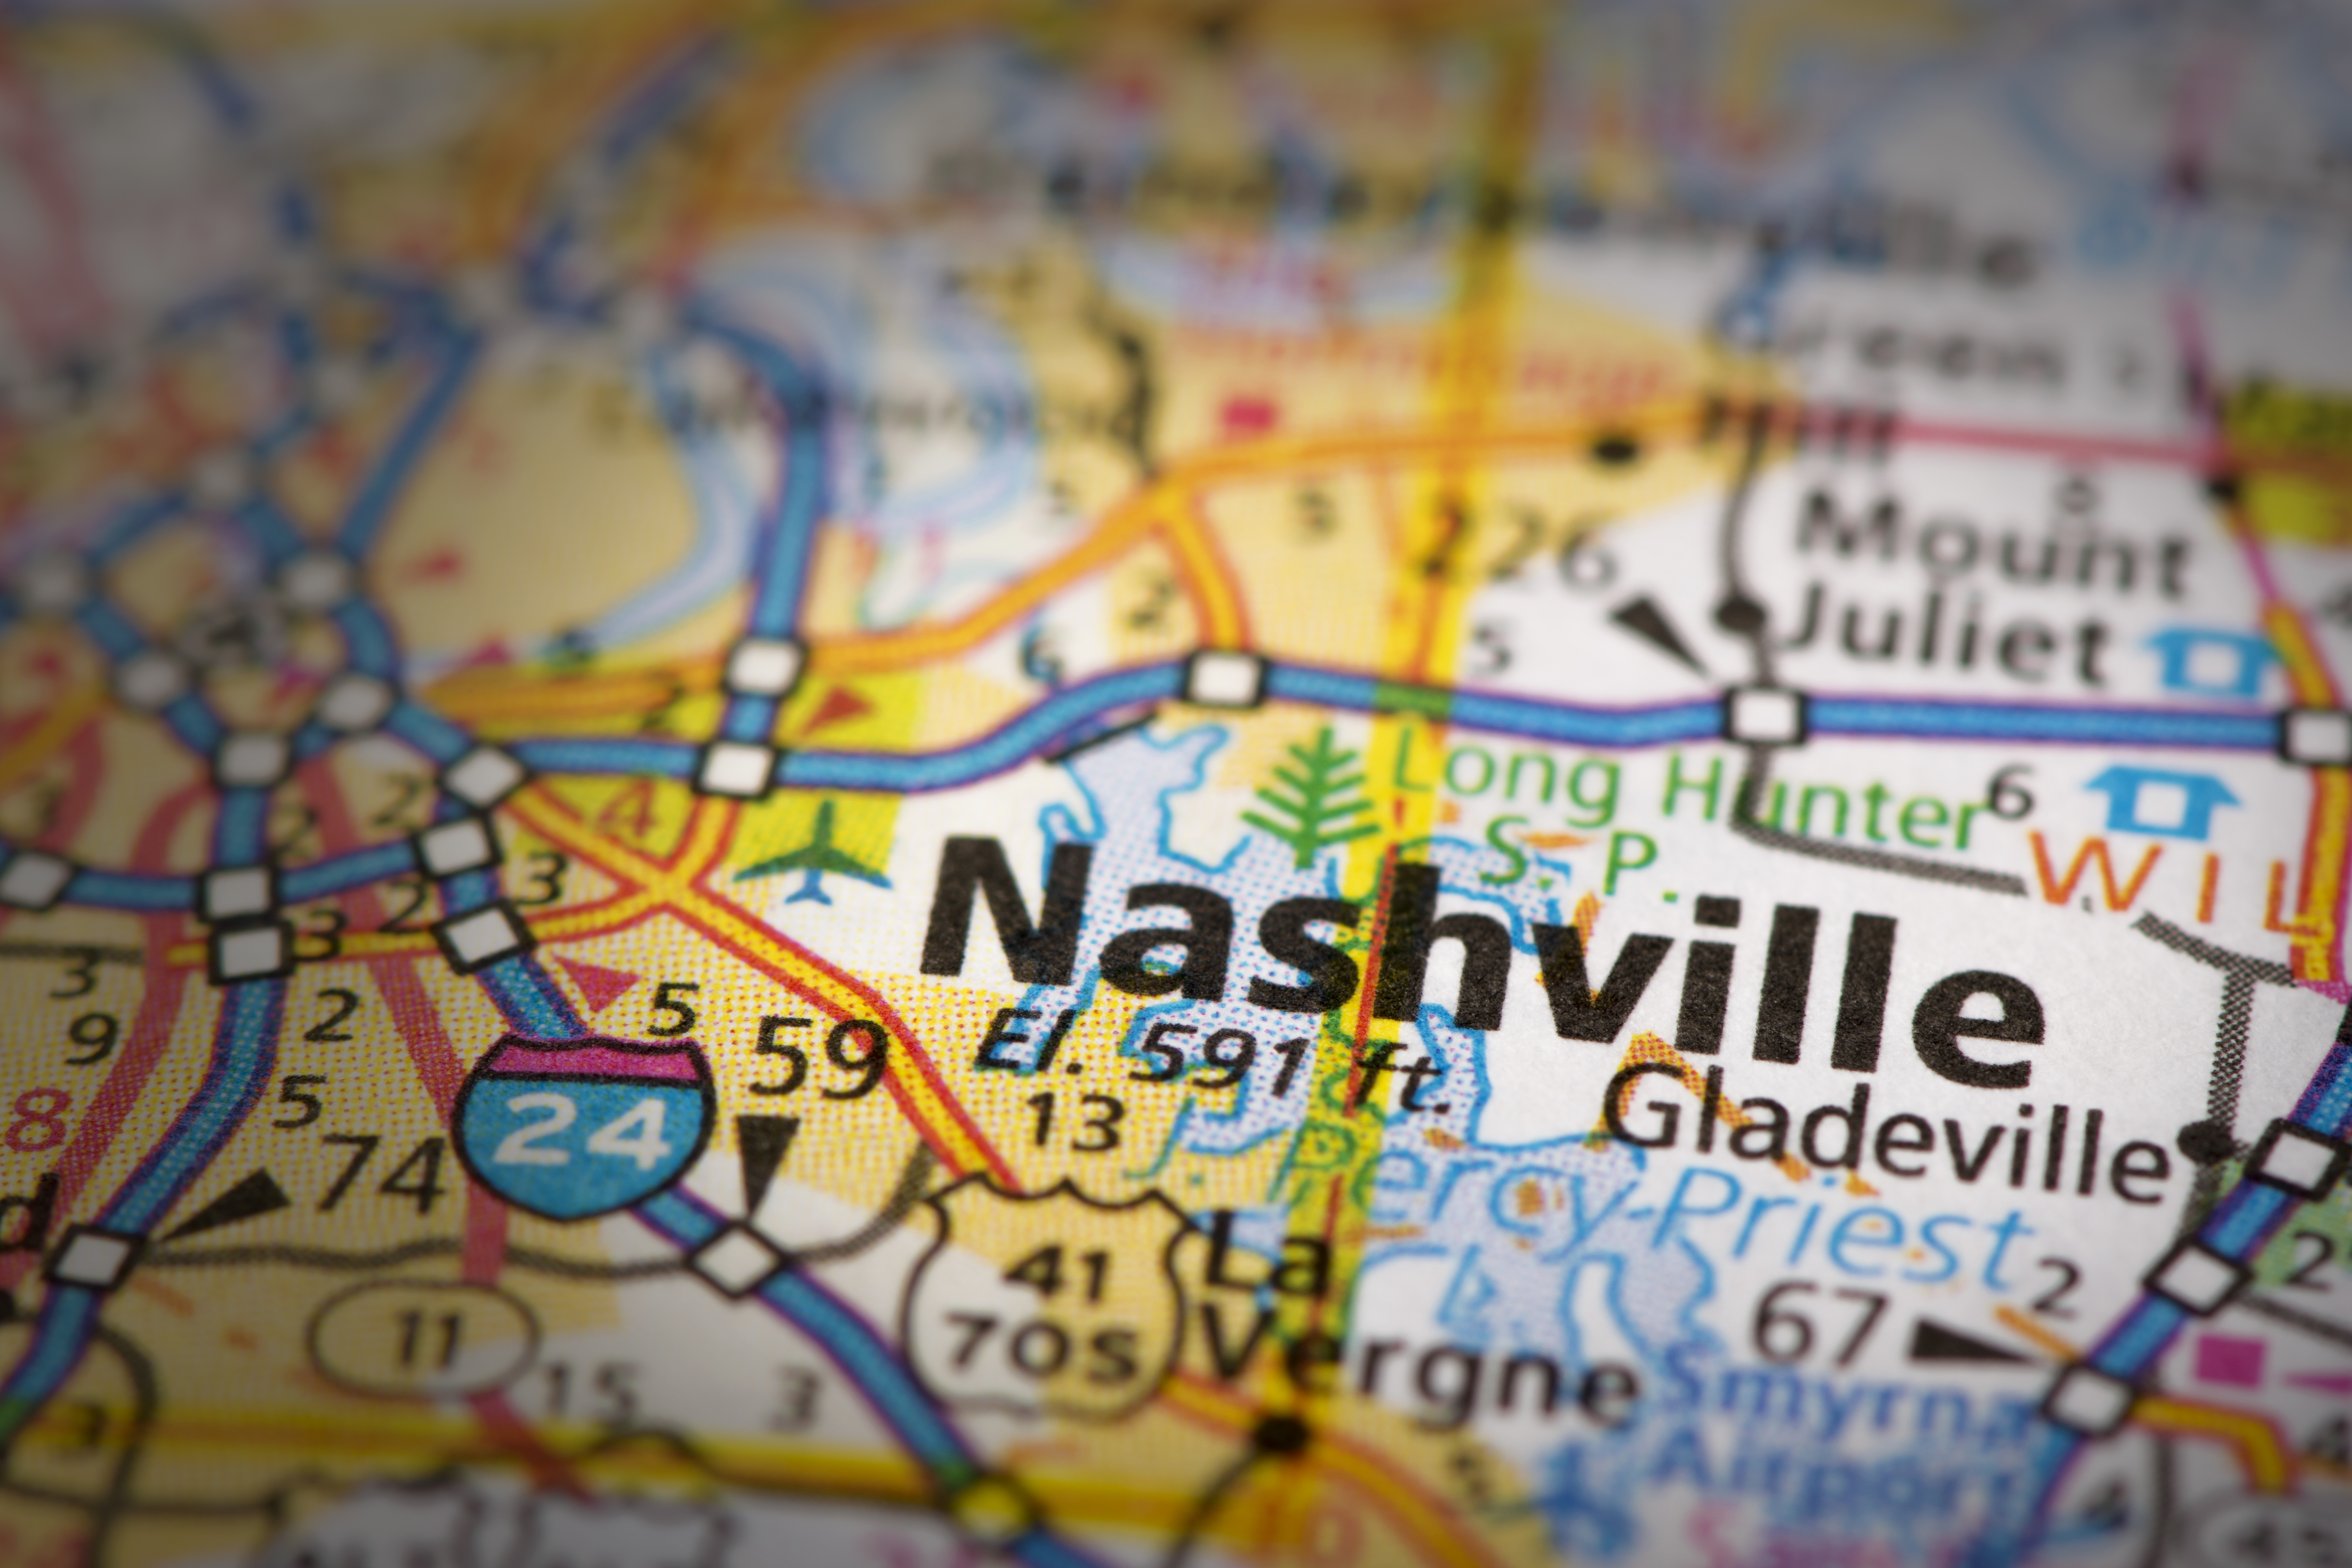 Nashville Tennessee on a map